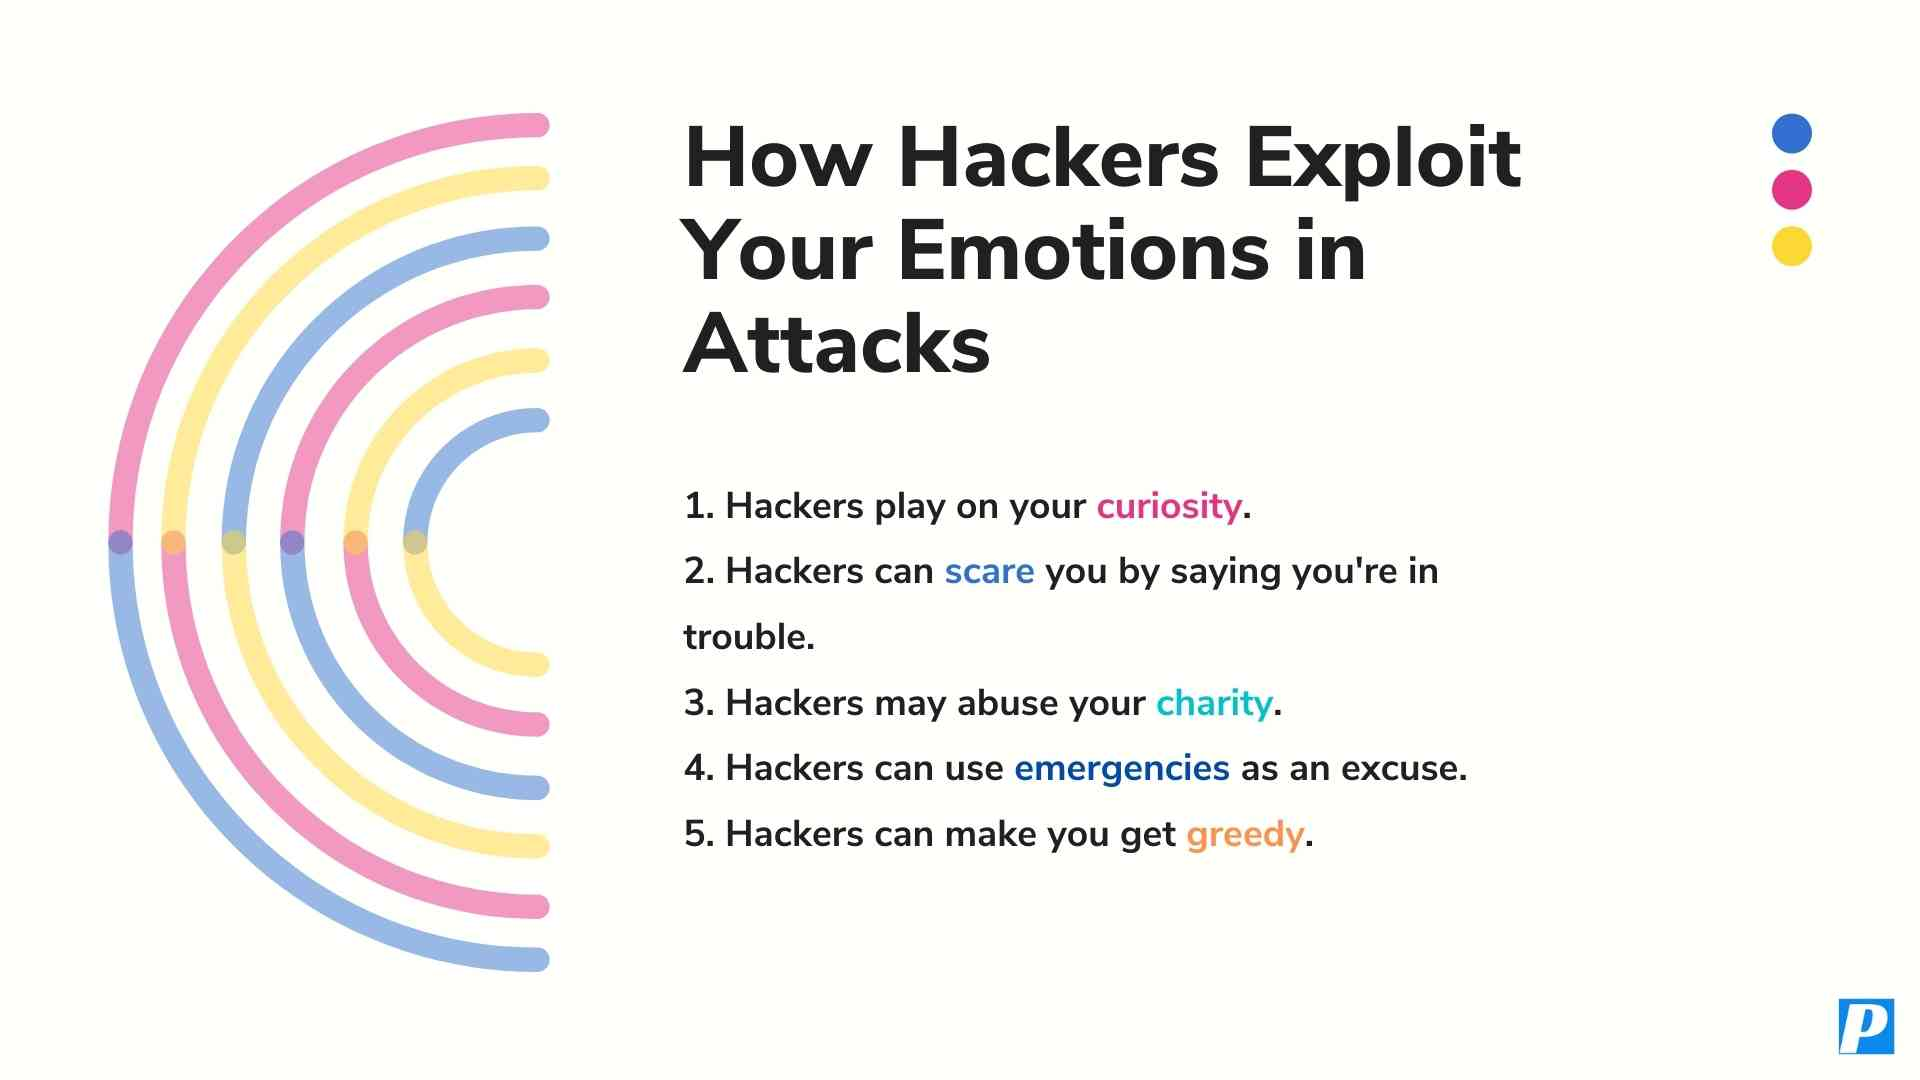 How Hackers Exploit Your Emotions in Attacks